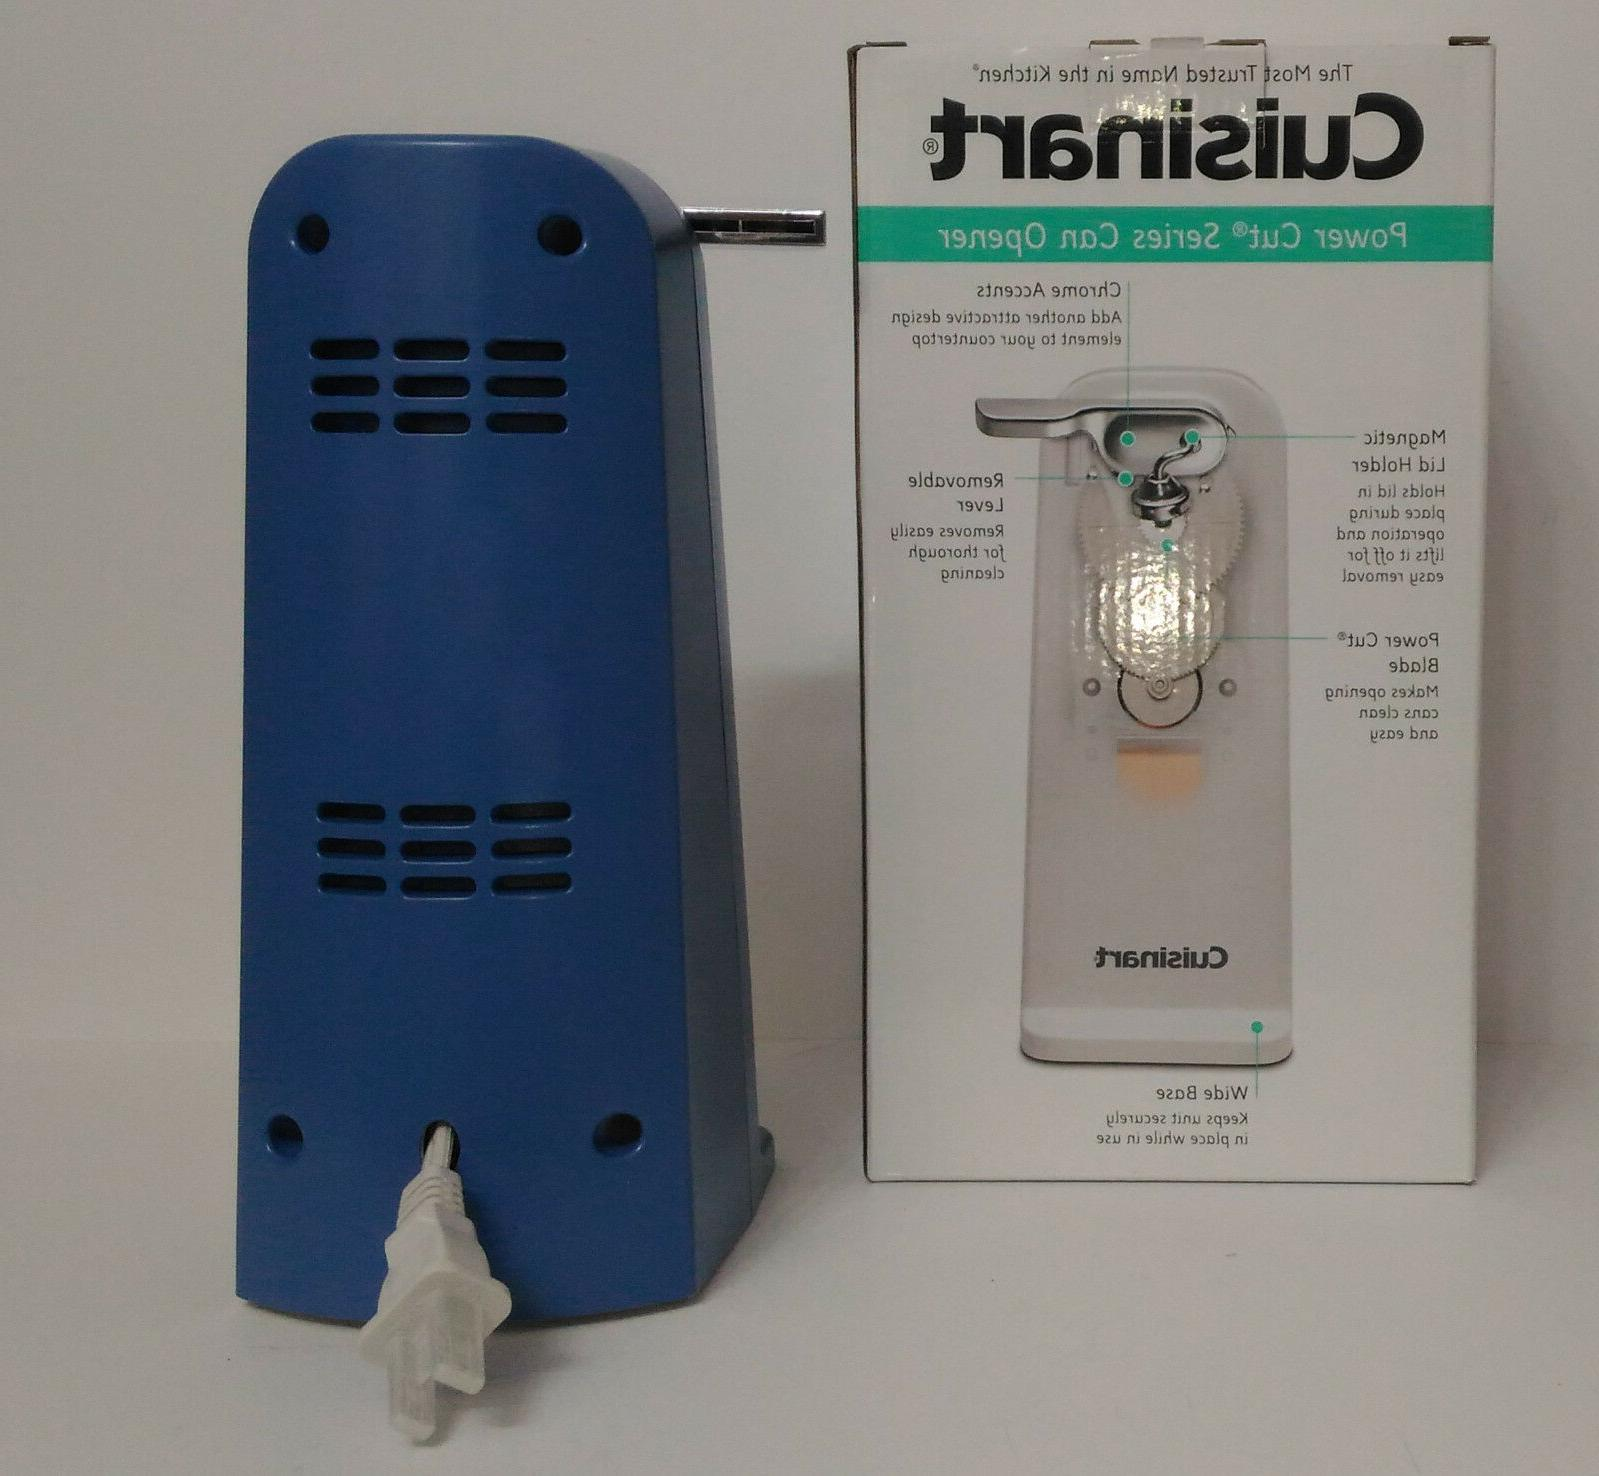 New Periwinkle Cuisinart Electric Can Opener, Blue KitchenAid